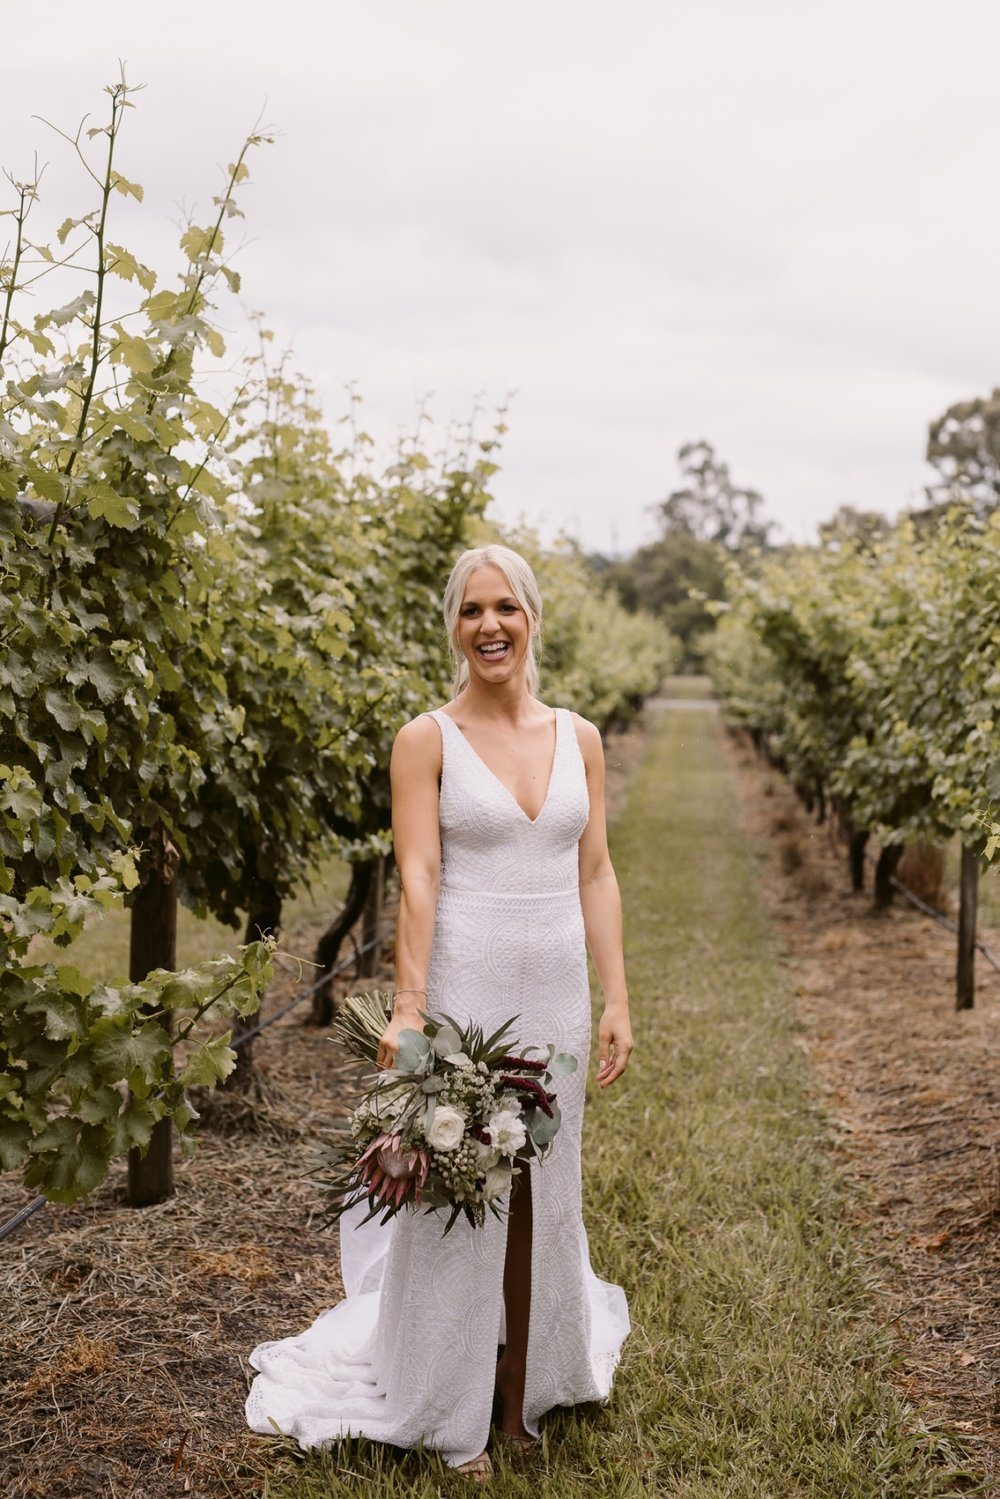 Immerse Yarra Valley Winery Wedding Photography82.jpg